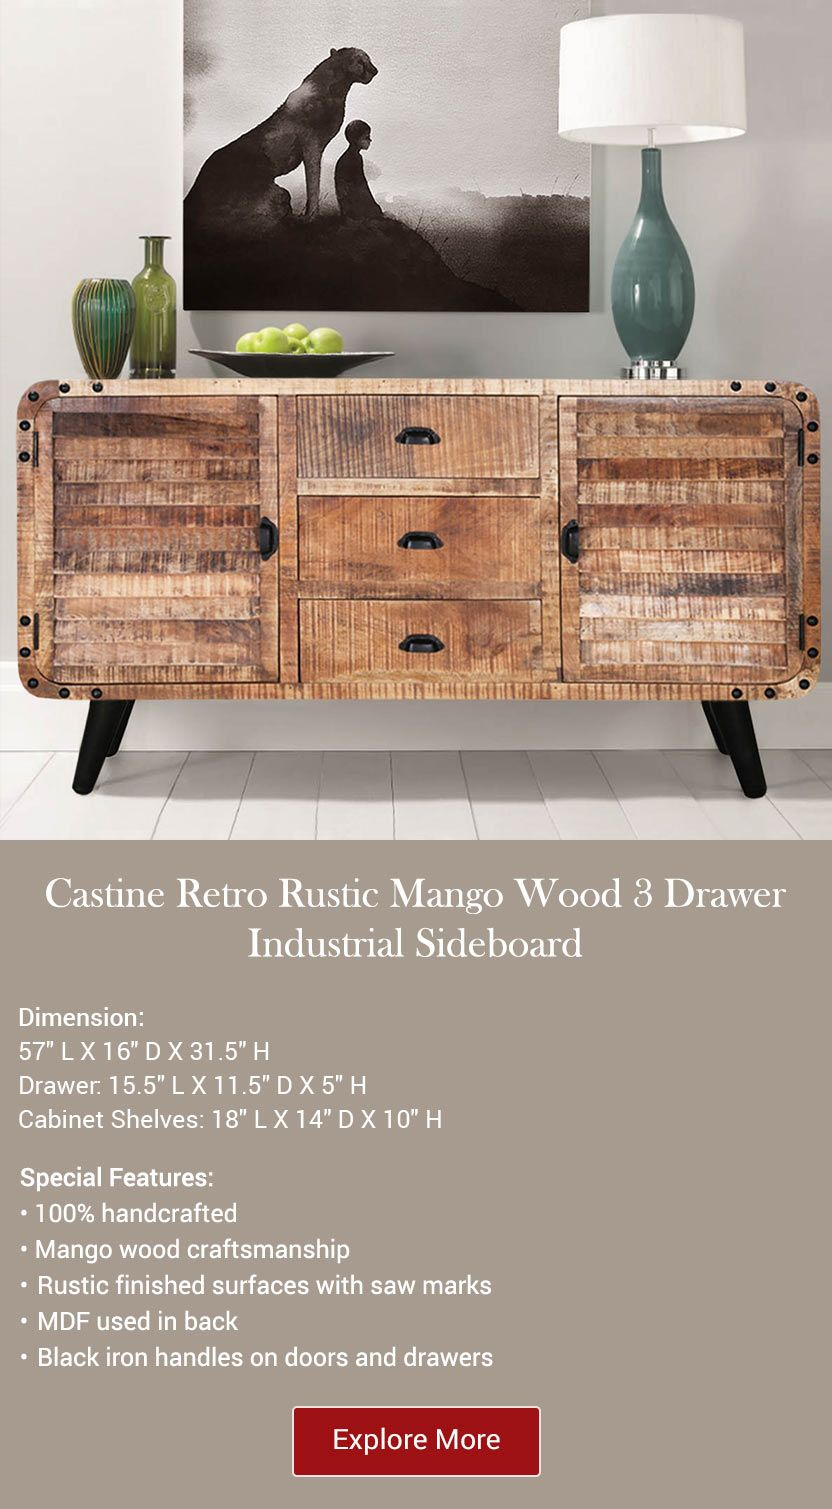 Castine Retro Rustic Mango Wood 3 Drawer Industrial intended for Industrial Style 3-Drawer Buffets (Image 10 of 30)